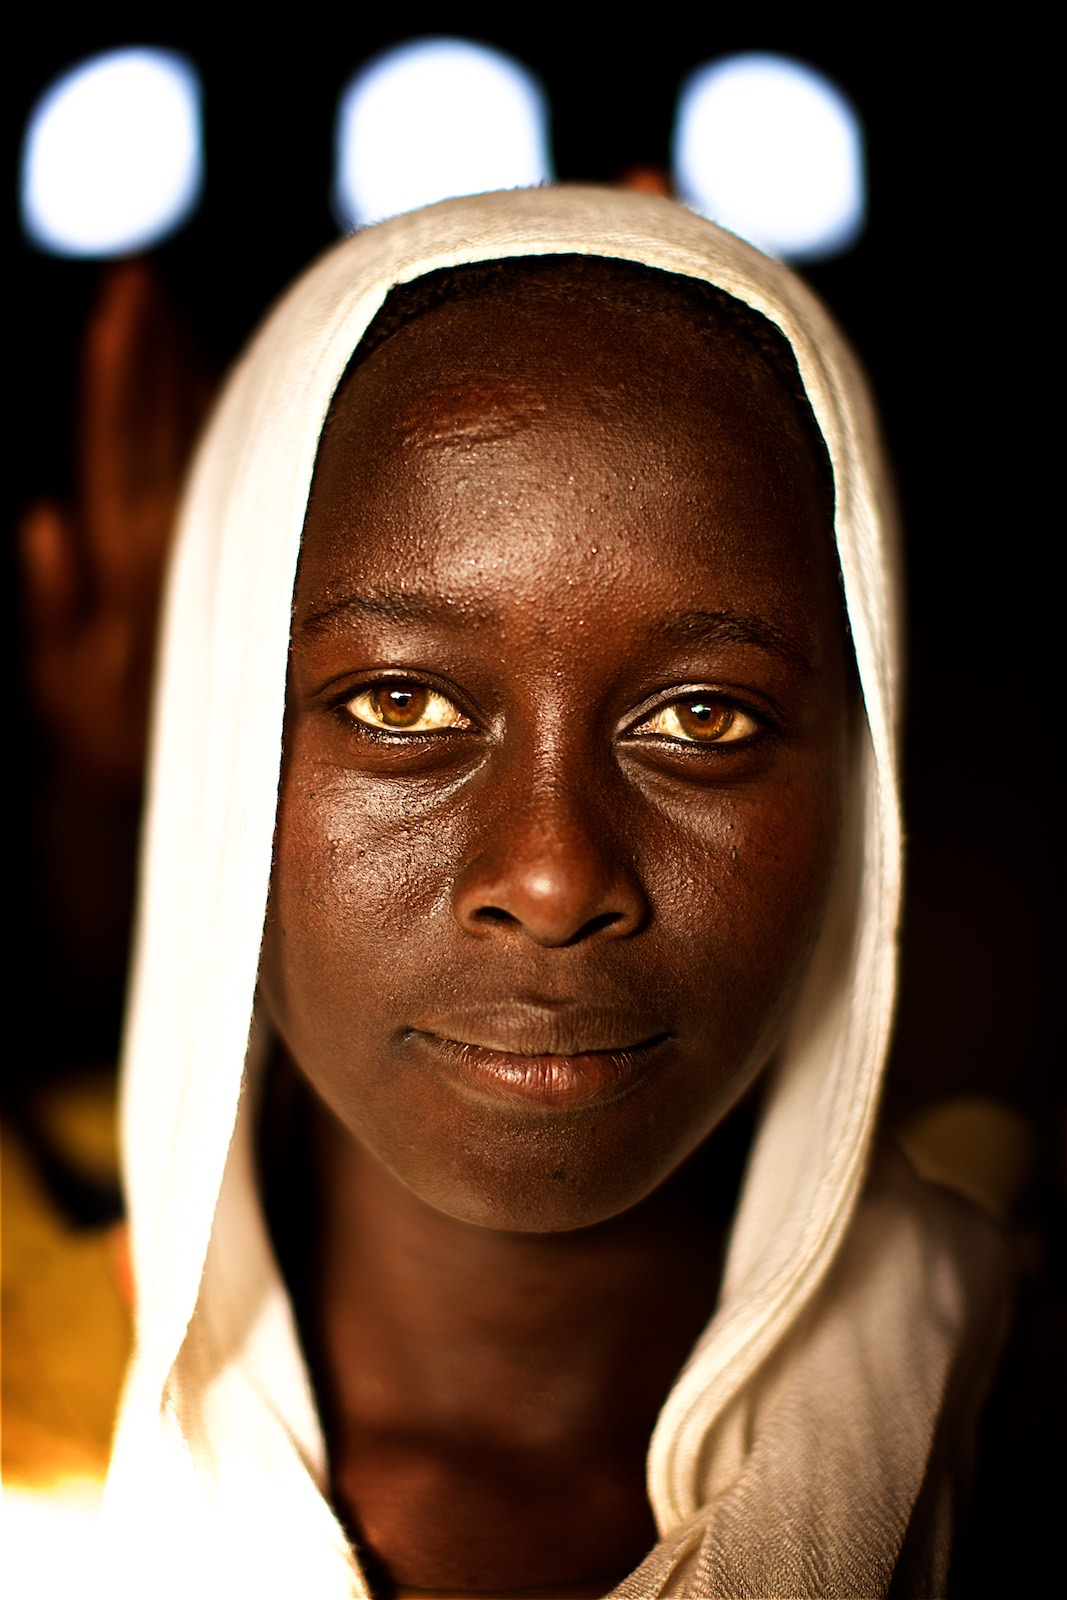 denis-bosnic-chad-school-jrs-jesuit-refugee-service-students-education-mercy-in-motion-36.jpg